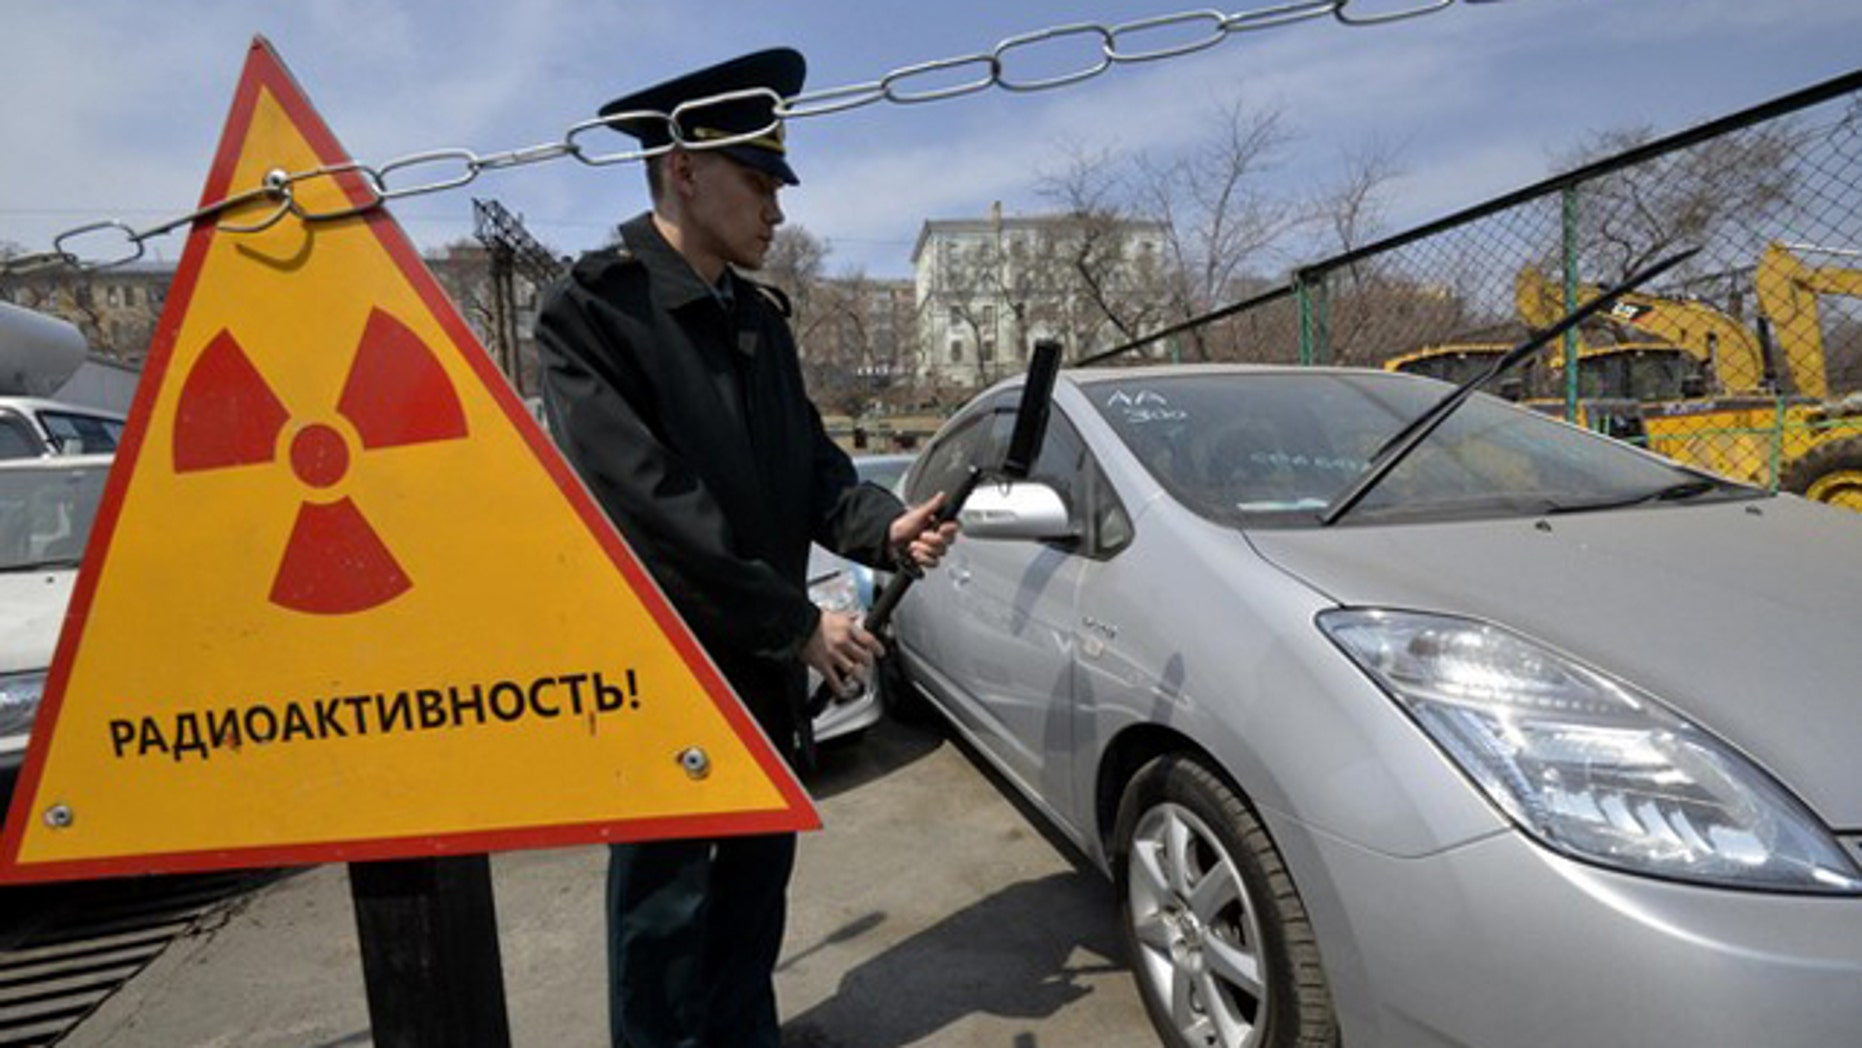 """A customs officer measures the radiation level of an automobile delivered from Japan, in Russia's far eastern city of Vladivostok April 14, 2011. About 300 cars and other vehicles are delivered from neighbouring Japan to the port. Radioactive background has been revealed in 49 vehicles lately. These machines will be kept in the port until the Russian Federal Service on Customers' Rights makes a decision on their fate, Russian customs officers said. The sign reads """"Radioactivity""""."""